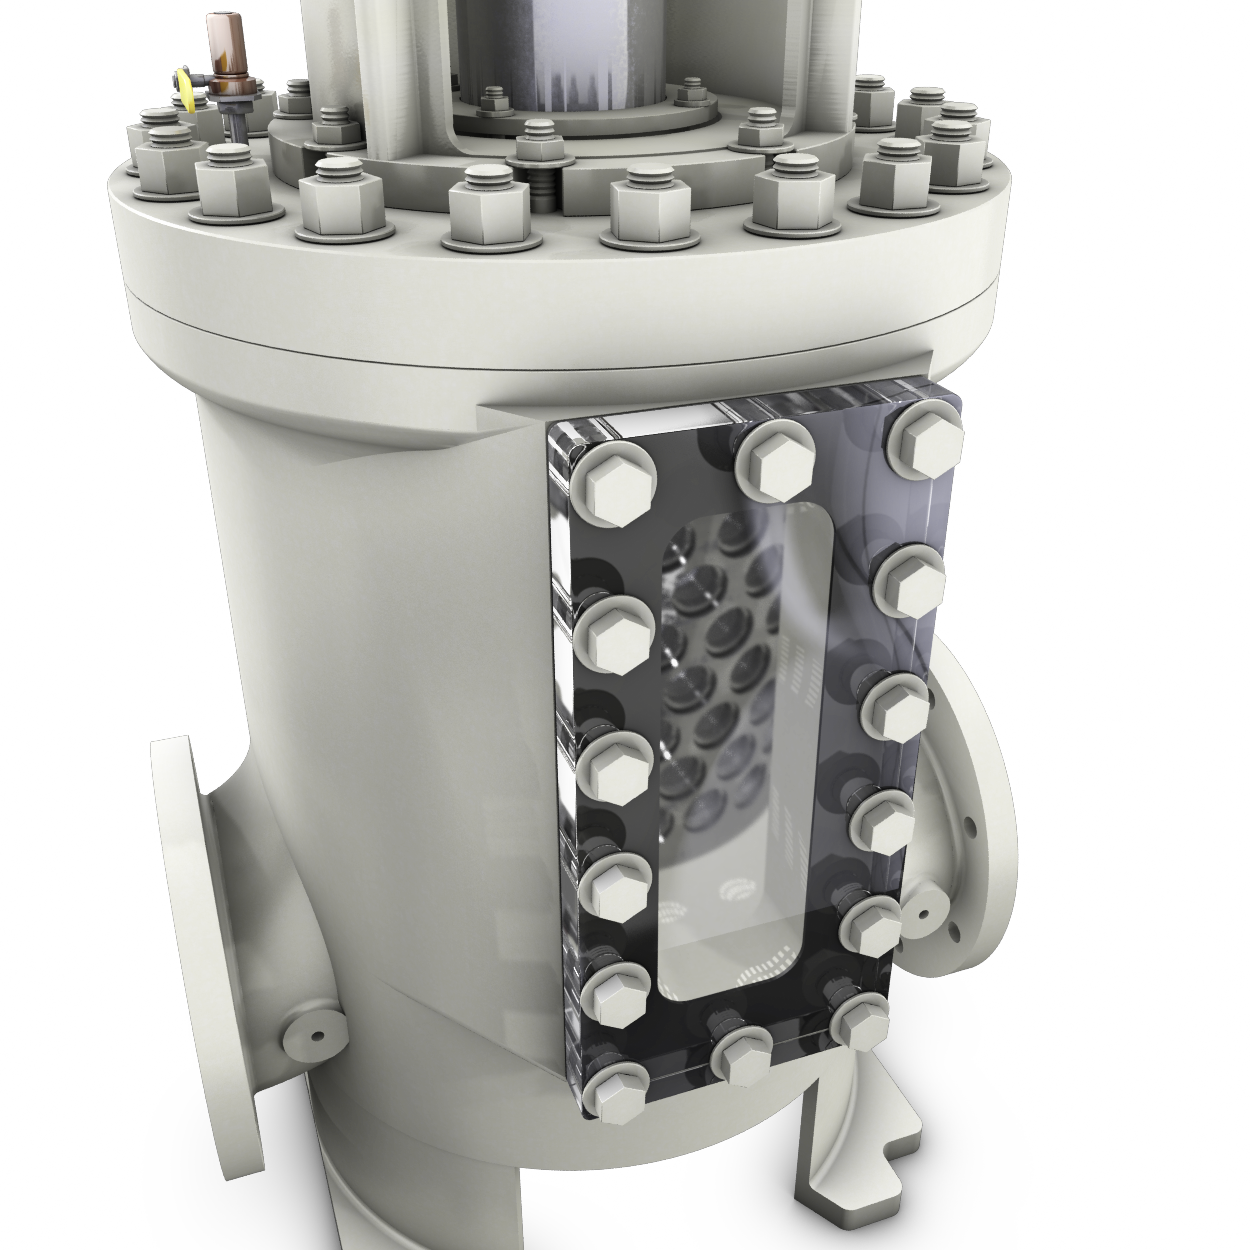 Model AP Automatic Self-Cleaning Strainer